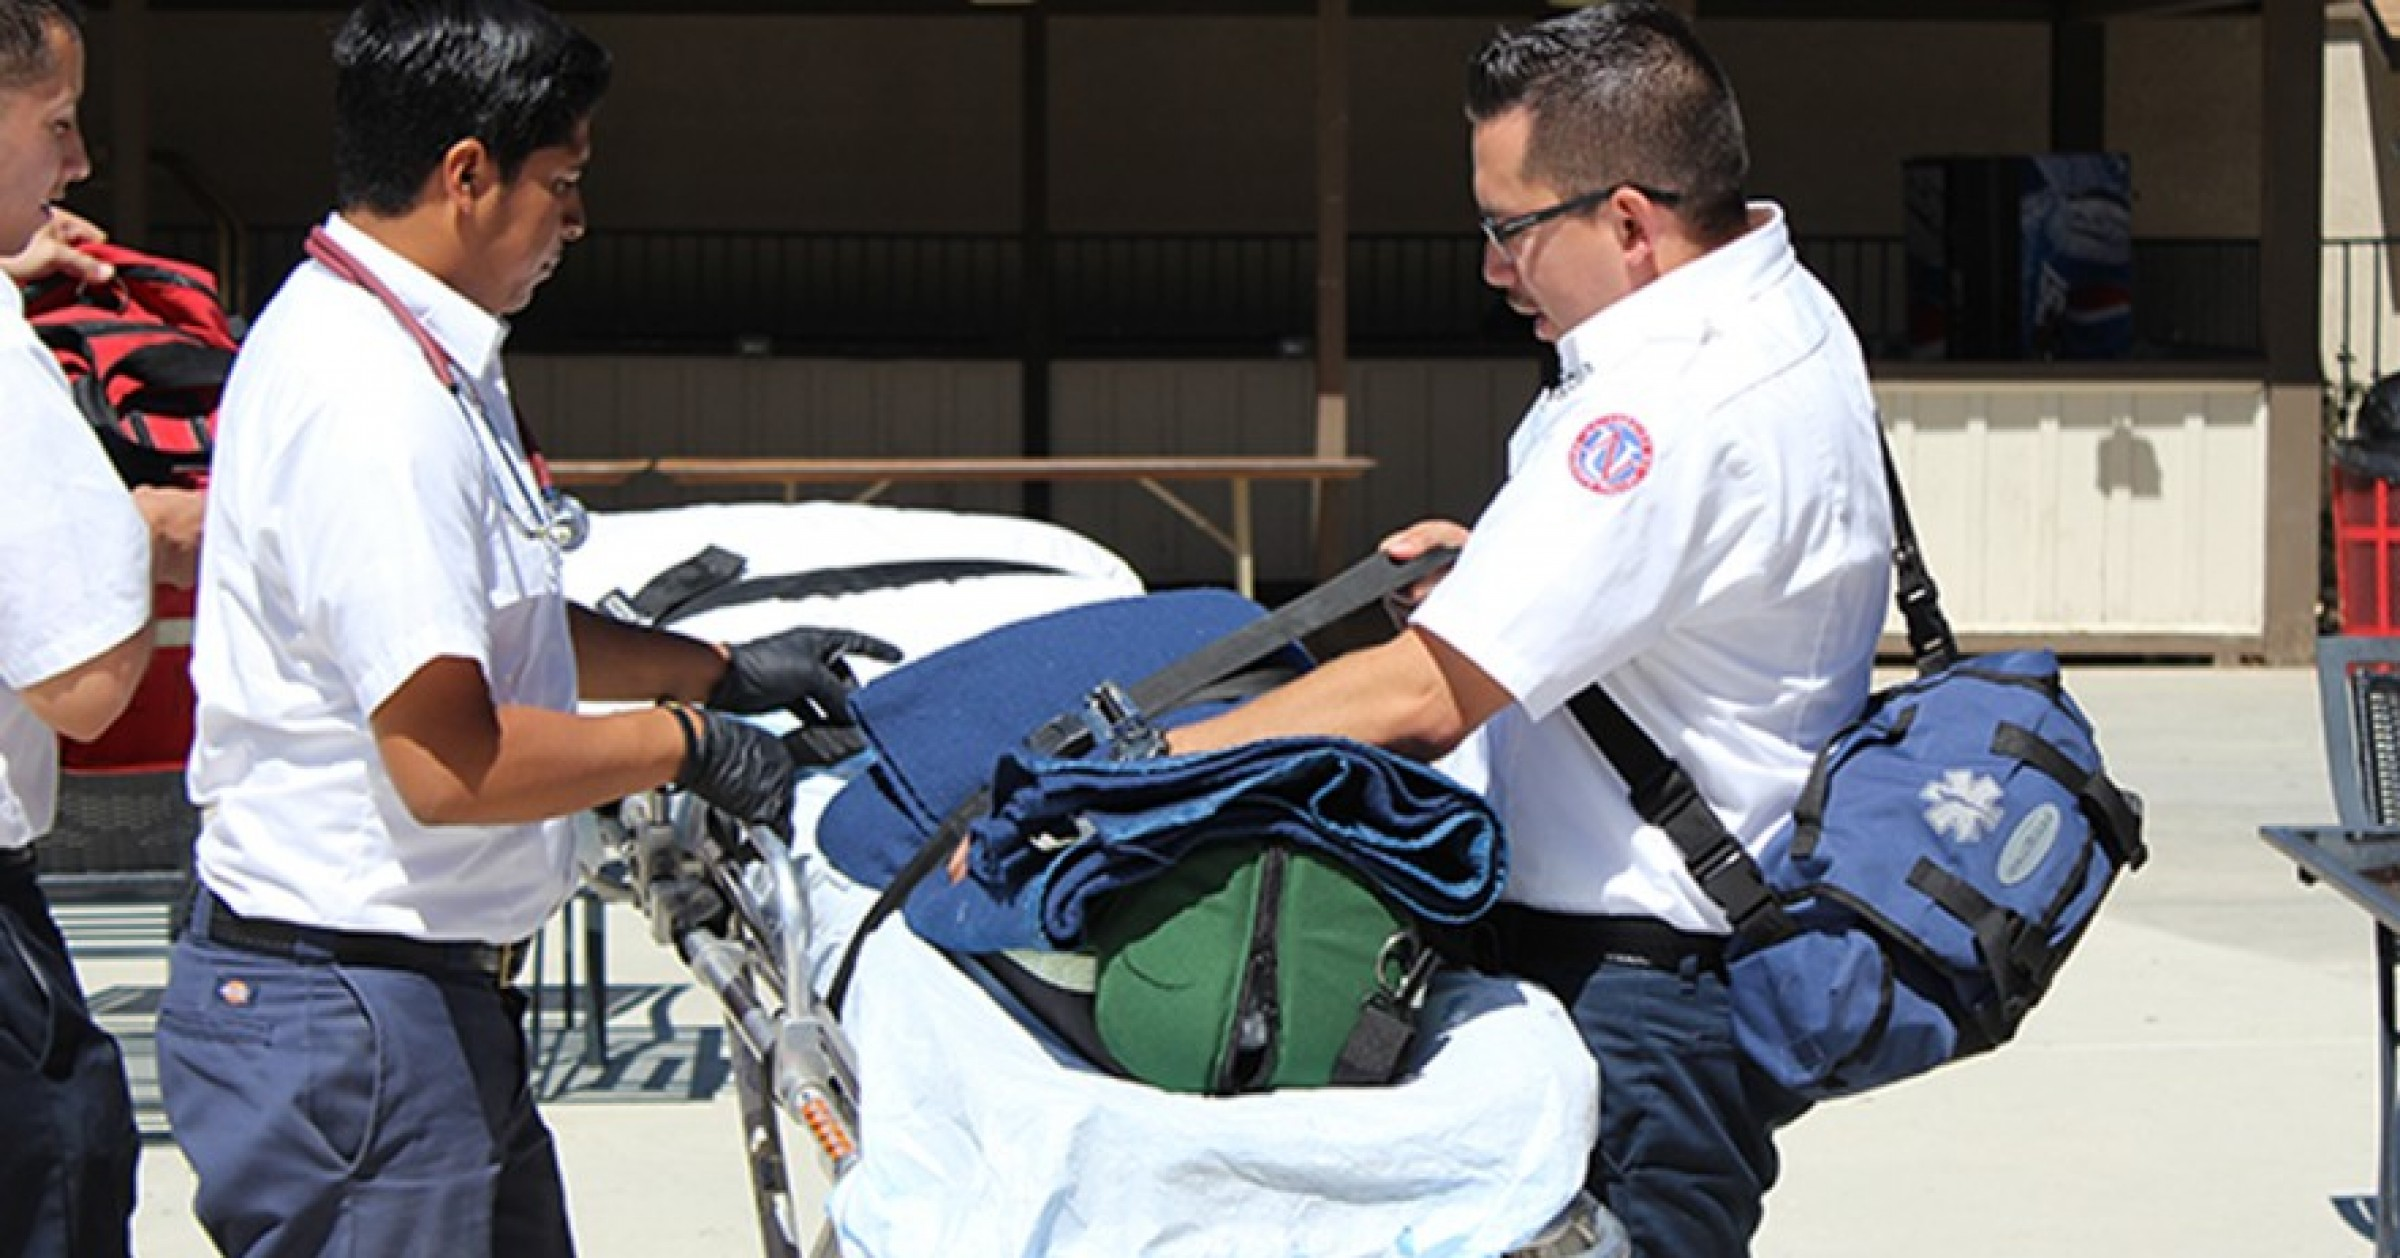 Los Angeles County adds UAV to Paramedic Training Registry